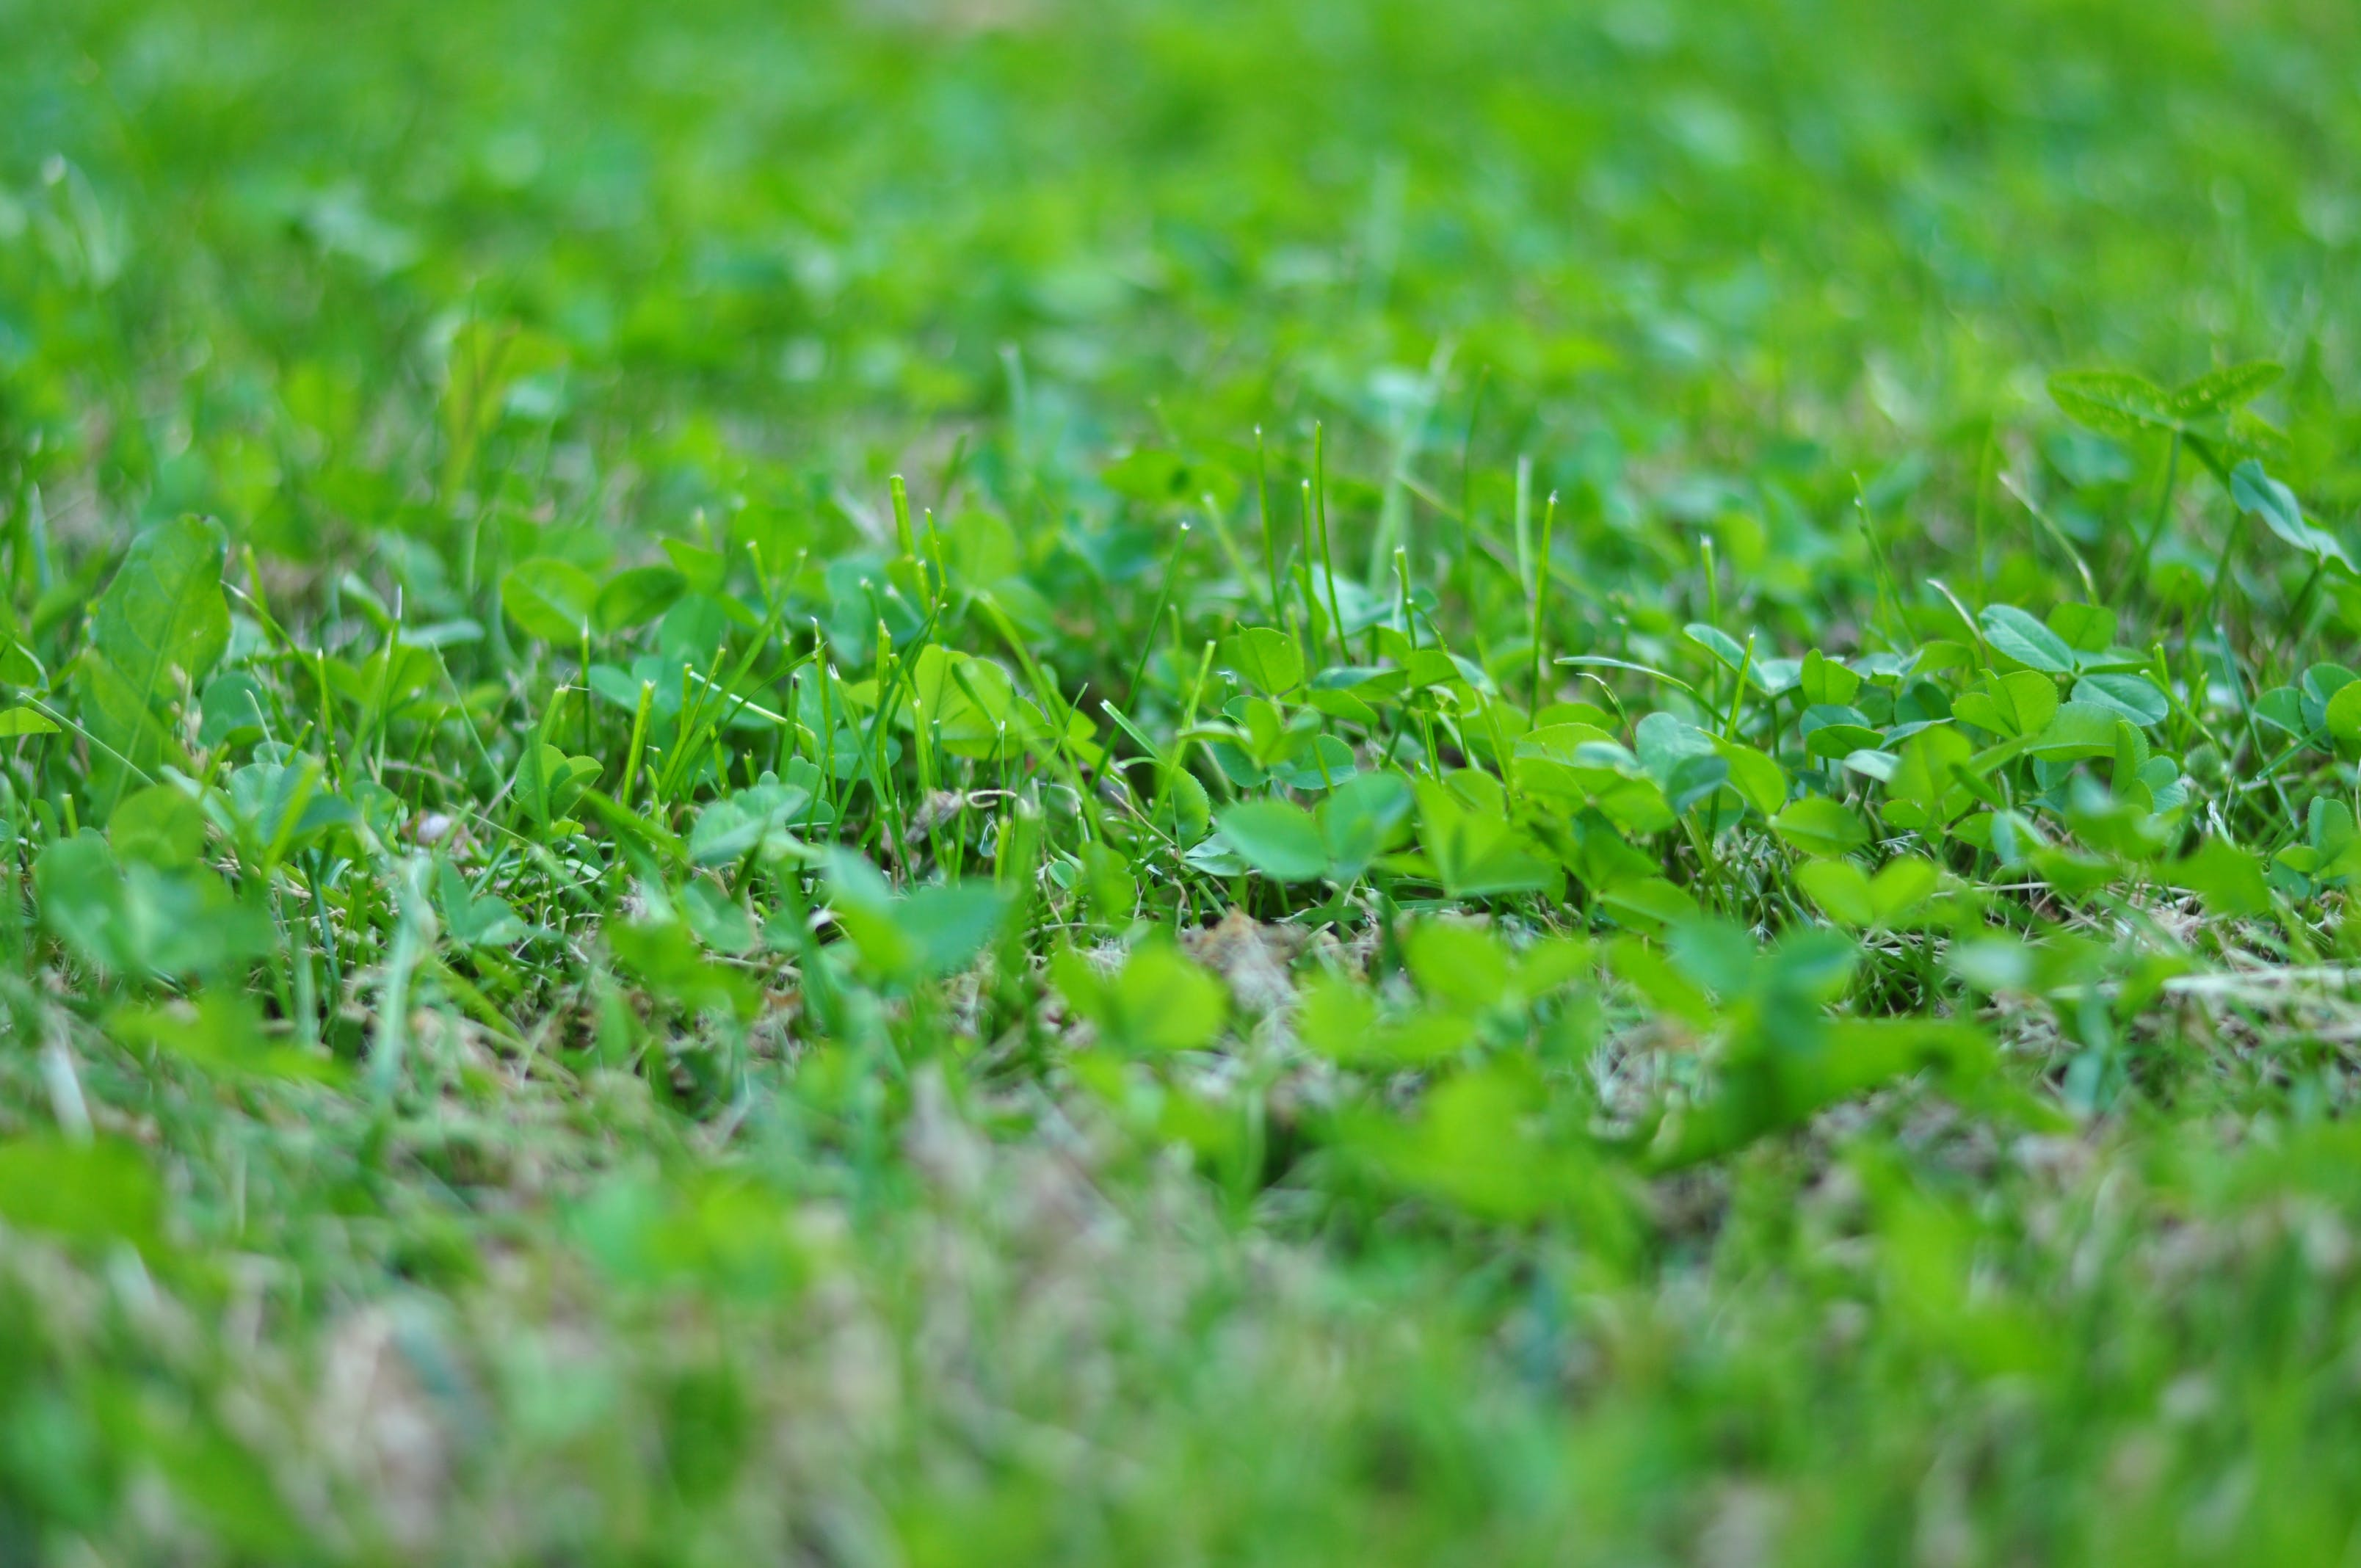 Free stock photo of garden plant, grass, green, lawn